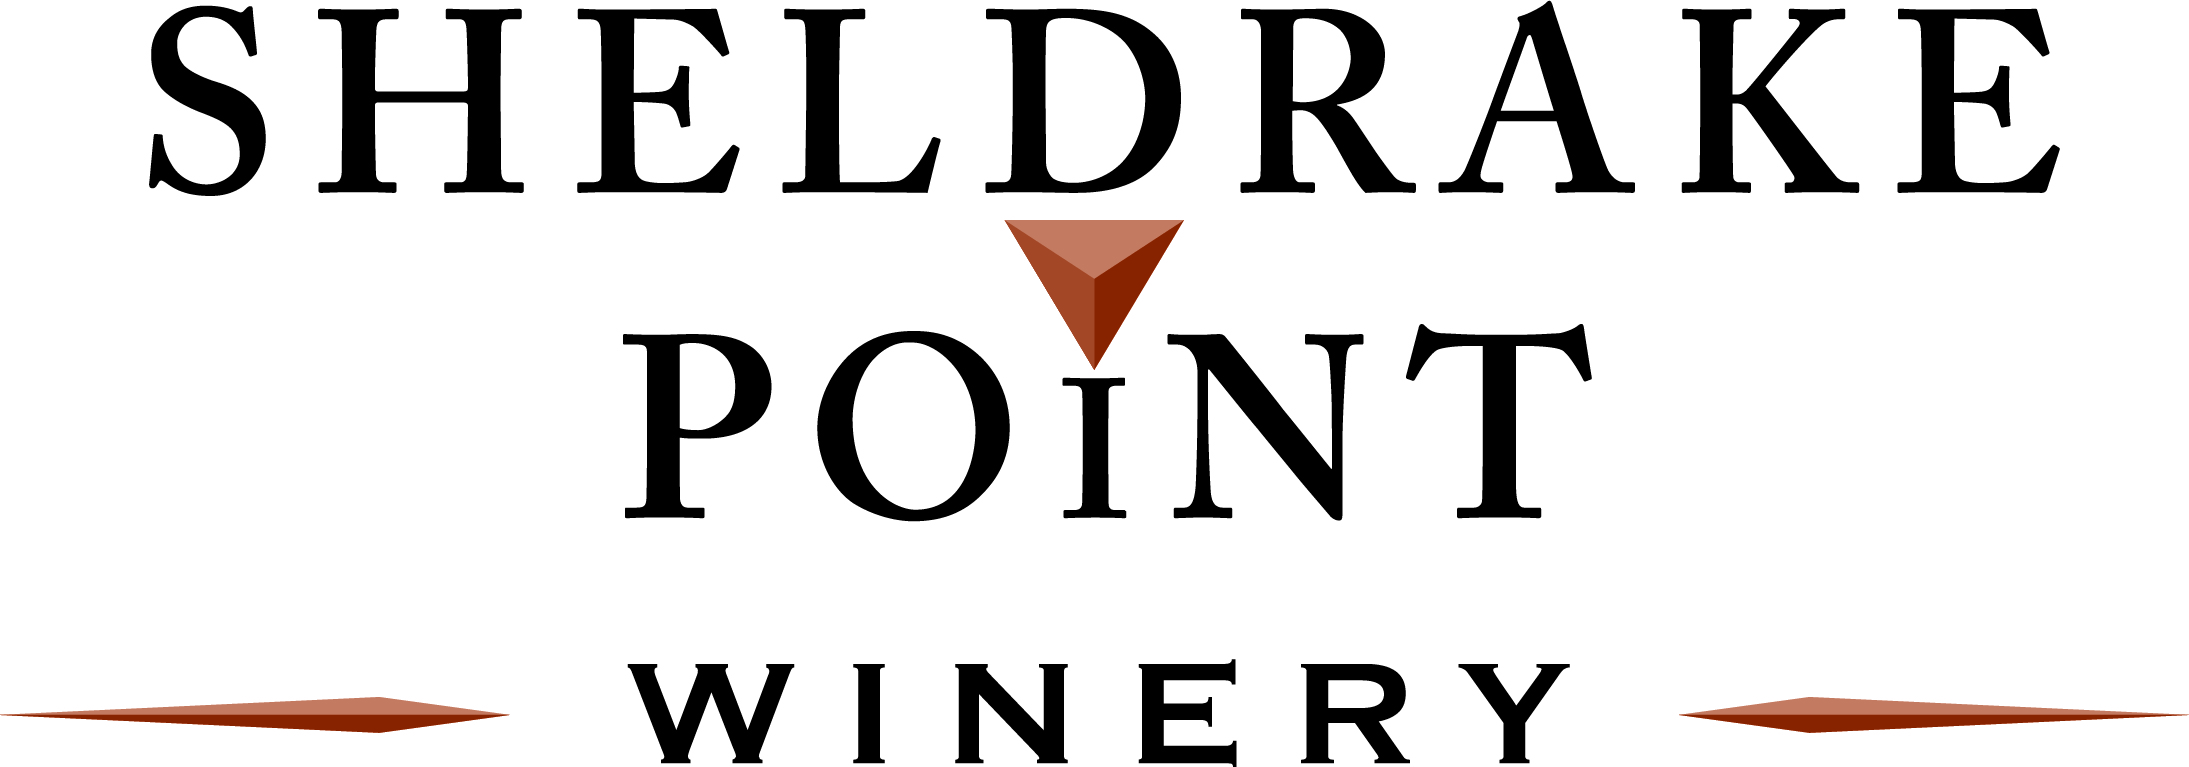 SheldrakePointLogo-Winery-Color